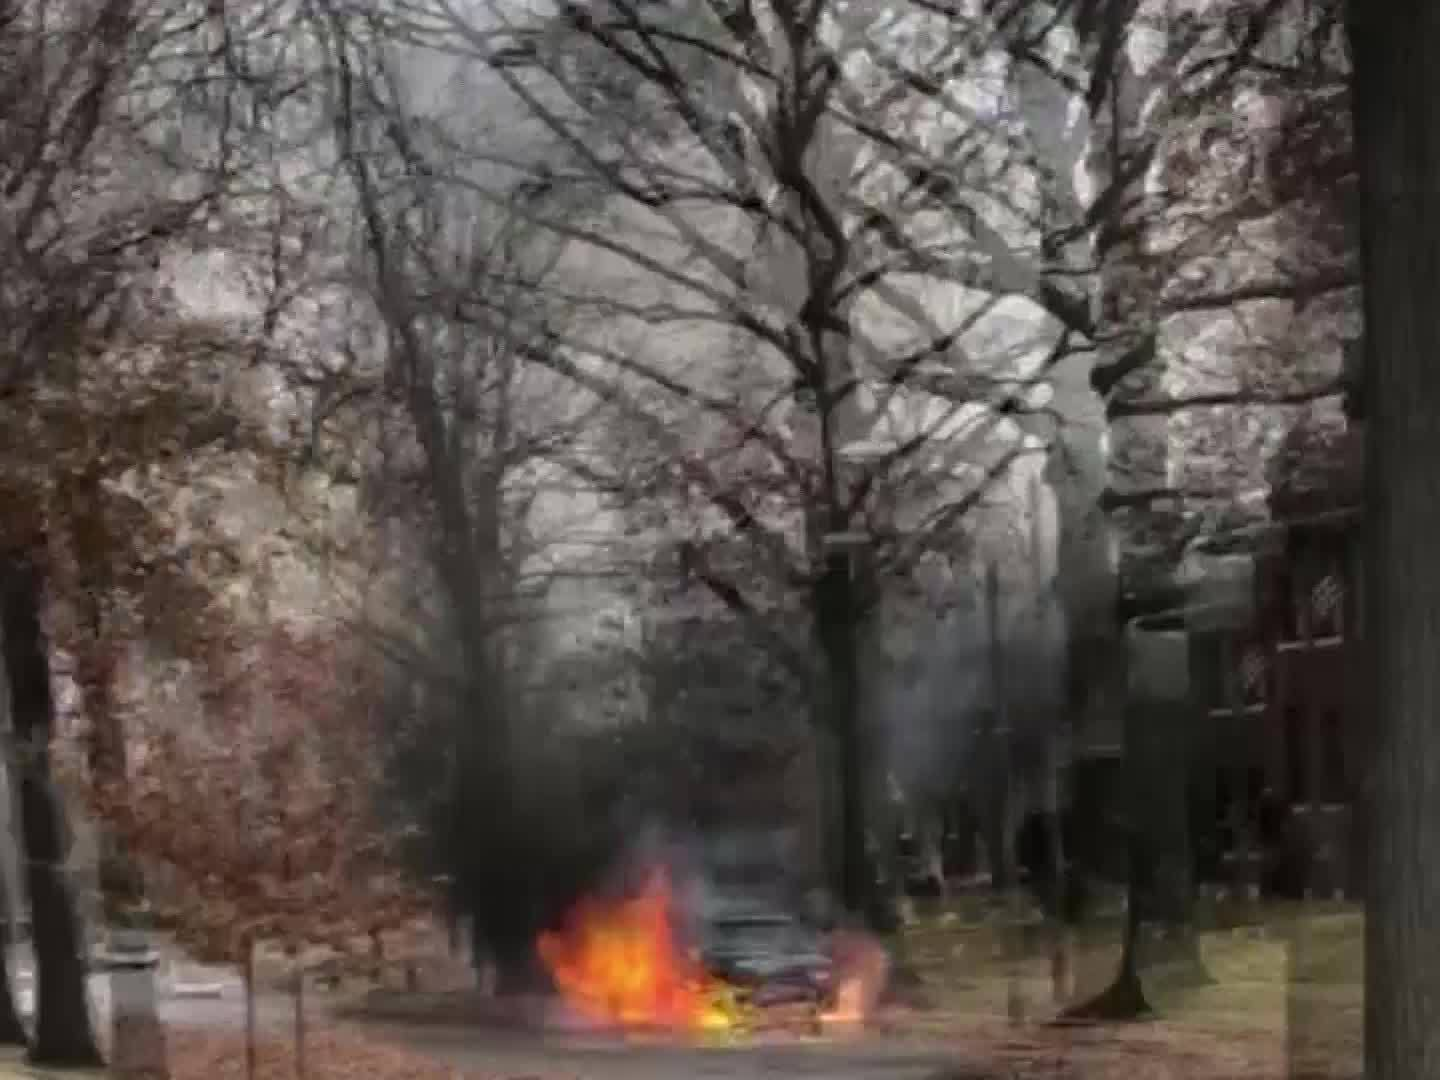 Parked_Cars_are_Catching_on_Fire_in_St___0_20171212220018